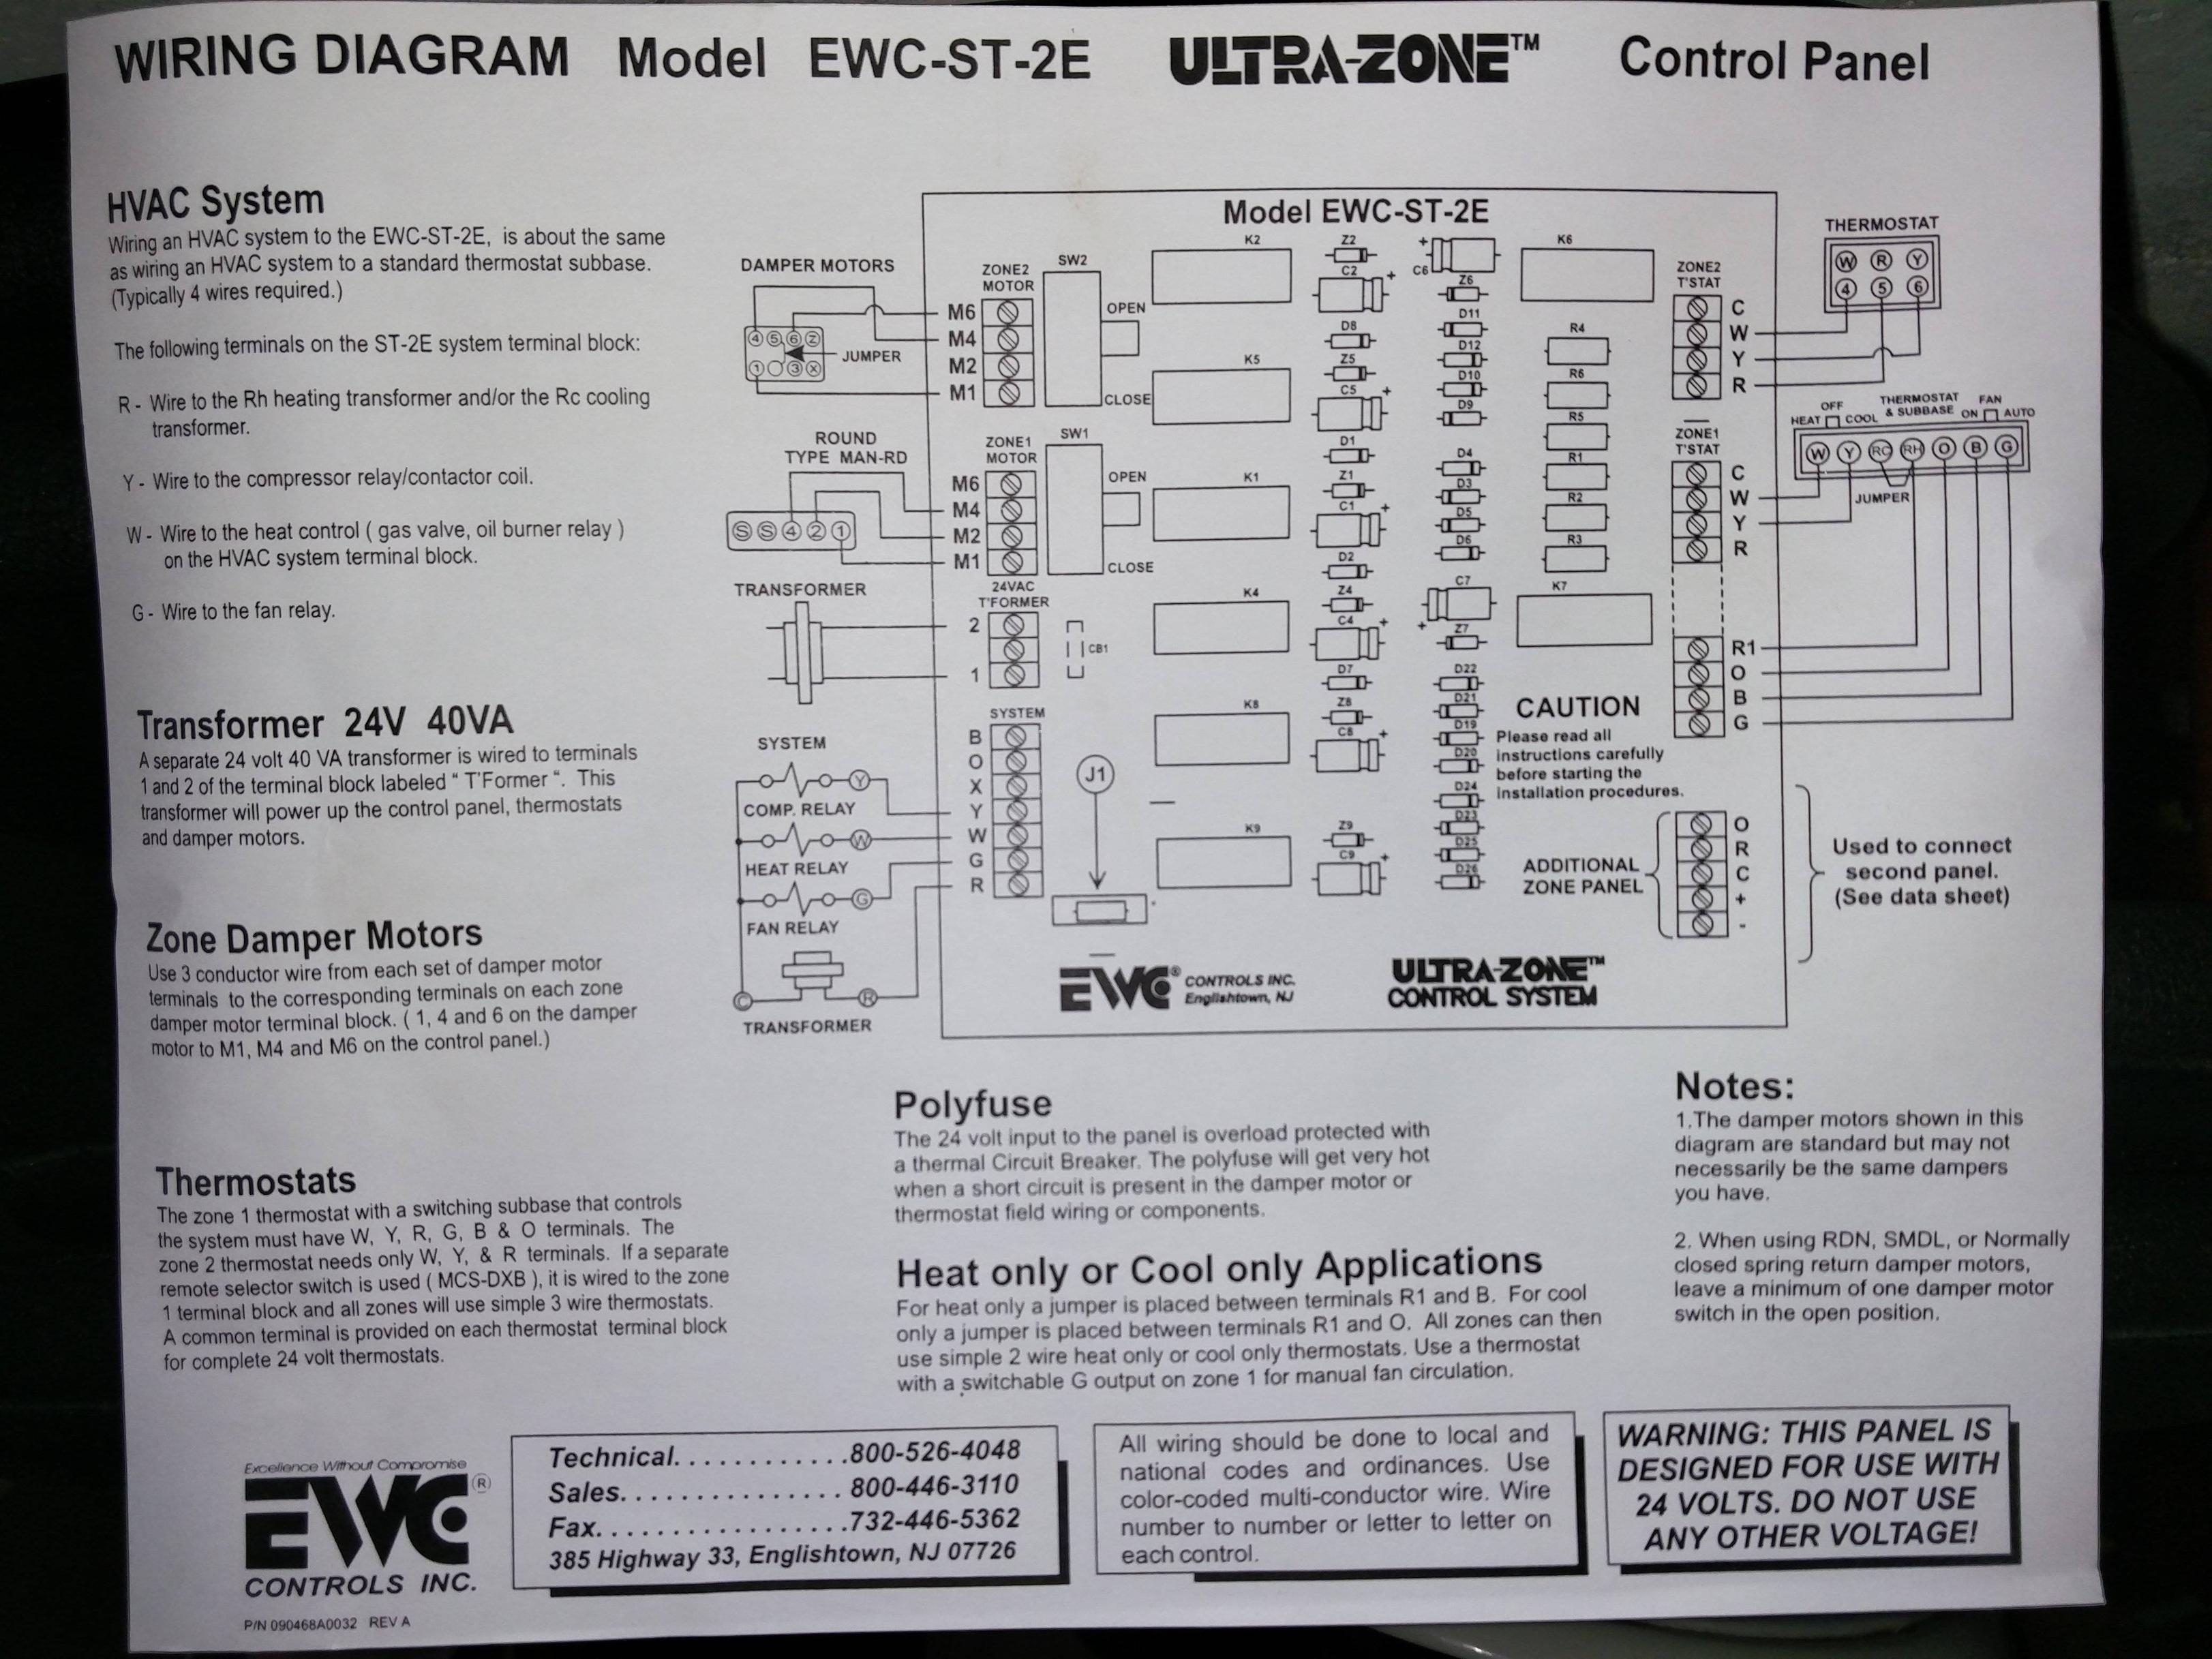 Wiring Diagram With Nest Get Free Image About Wiring Diagram